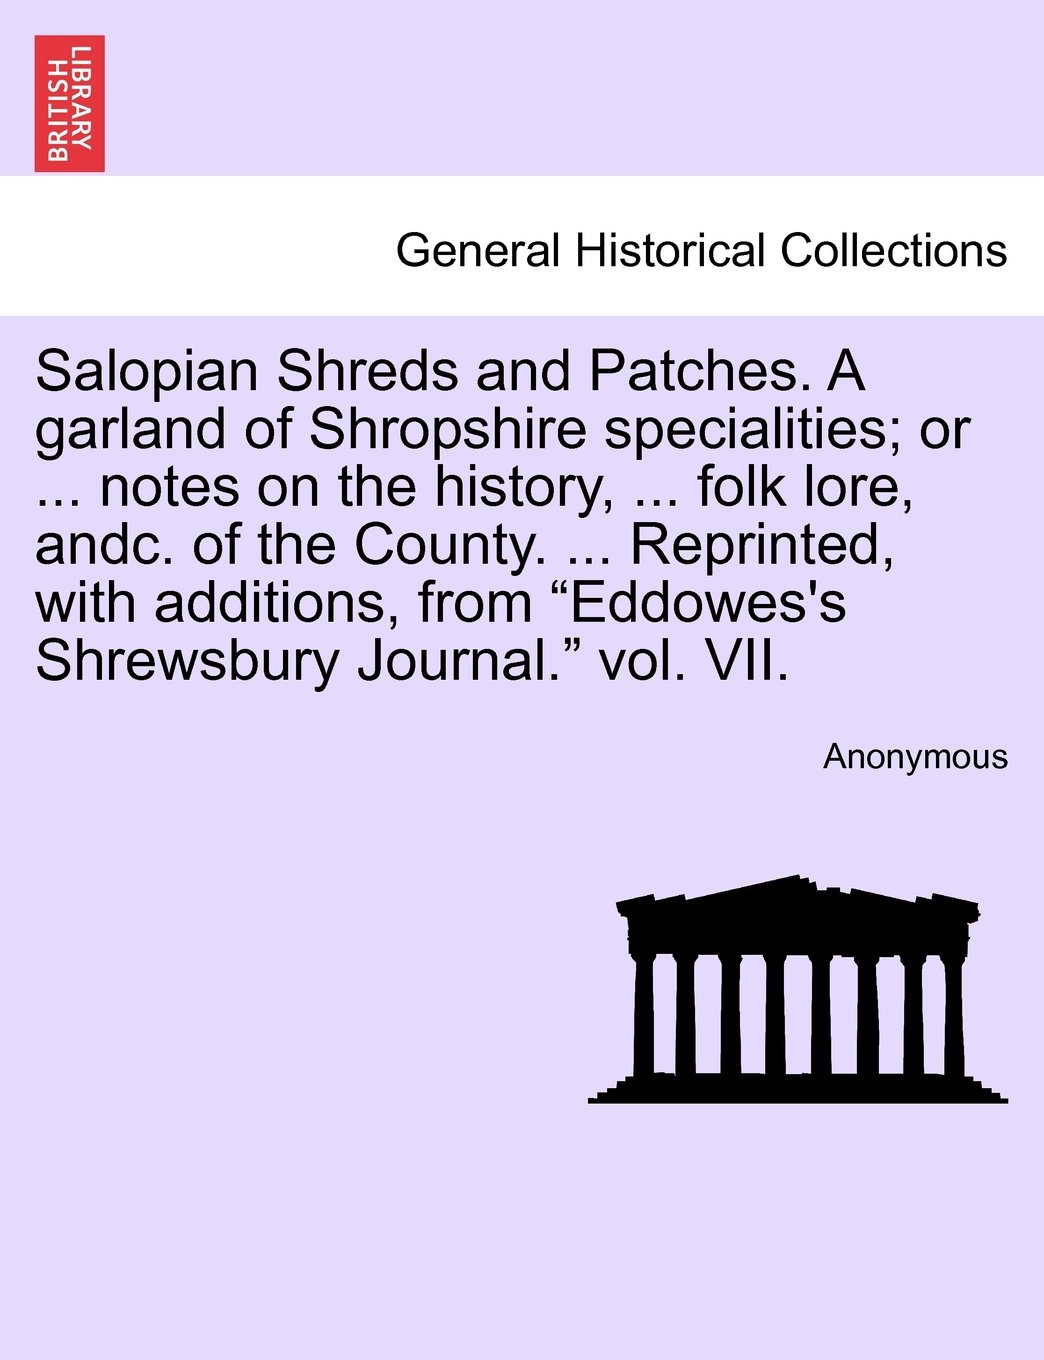 "Salopian Shreds and Patches. A garland of Shropshire specialities; or ... notes on the history, ... folk lore, andc. of the County. ... Reprinted, ... ""Eddowes's Shrewsbury Journal."" vol. VII. pdf"